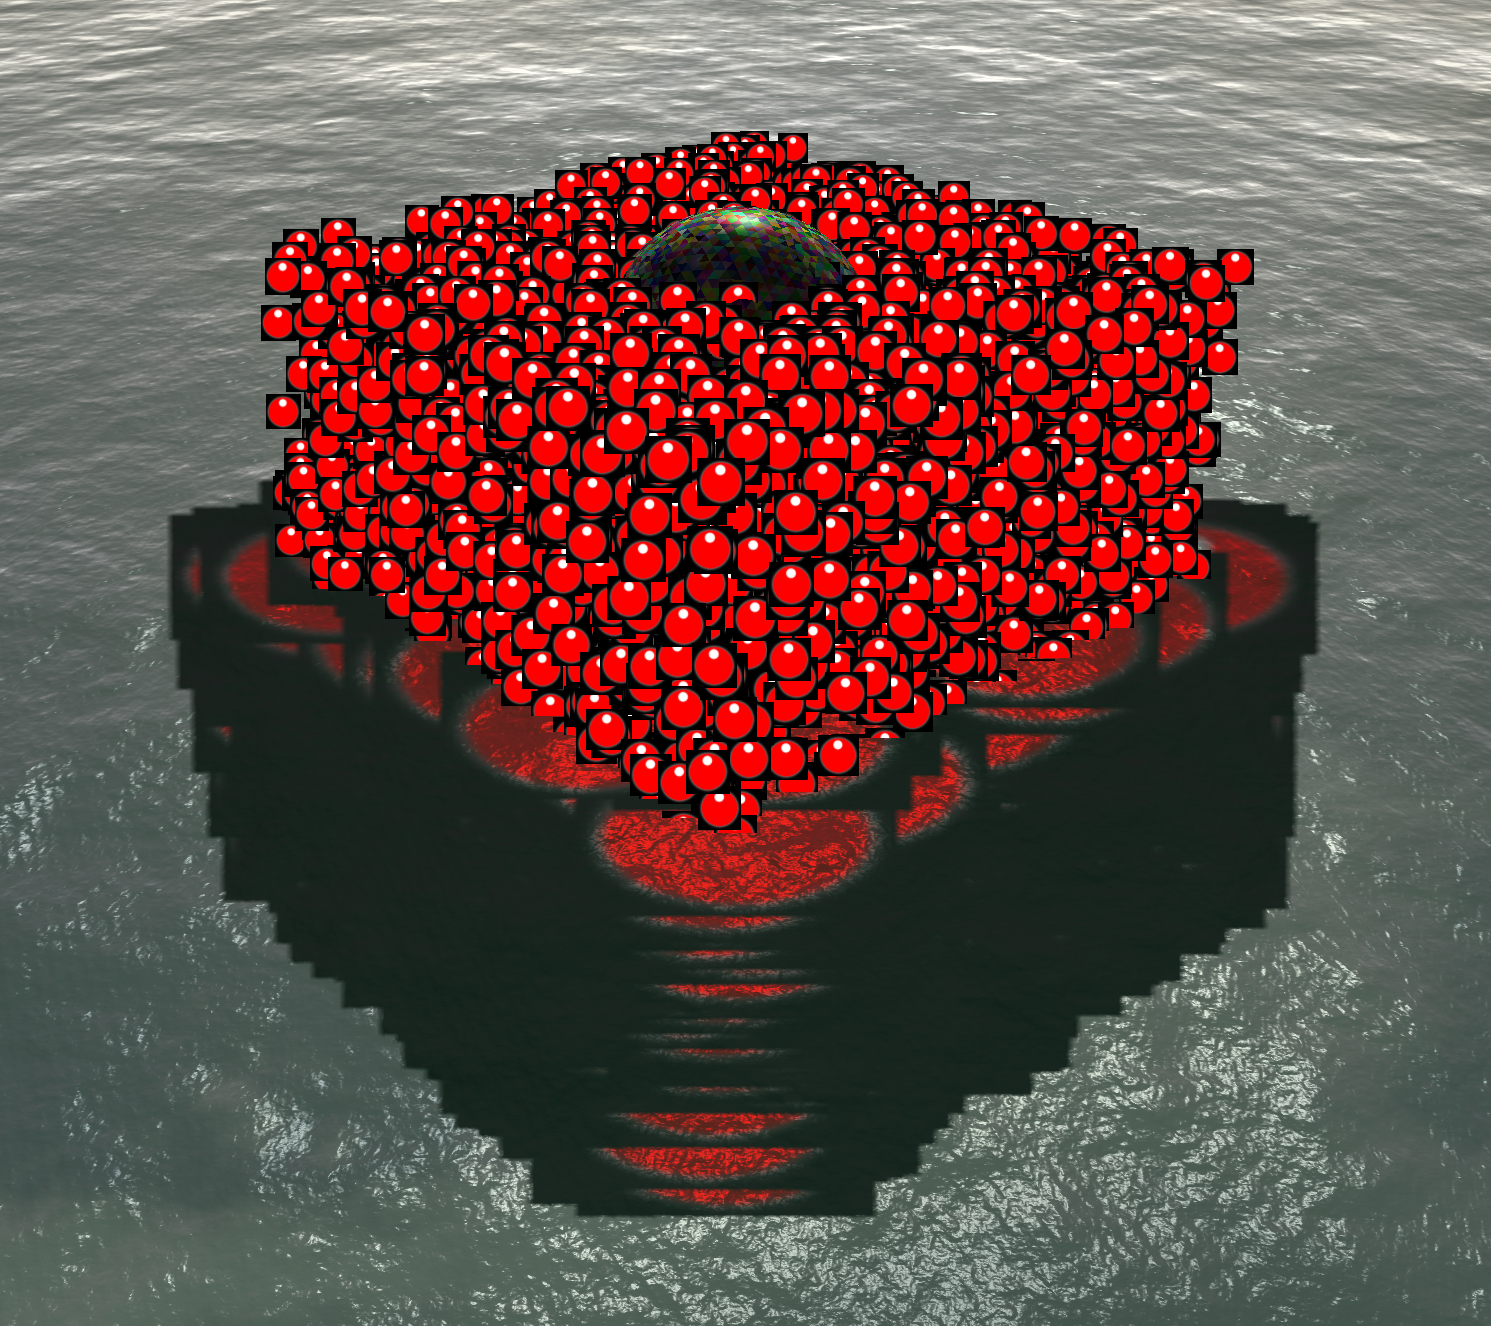 webgl_shaders_ocean_screenshot